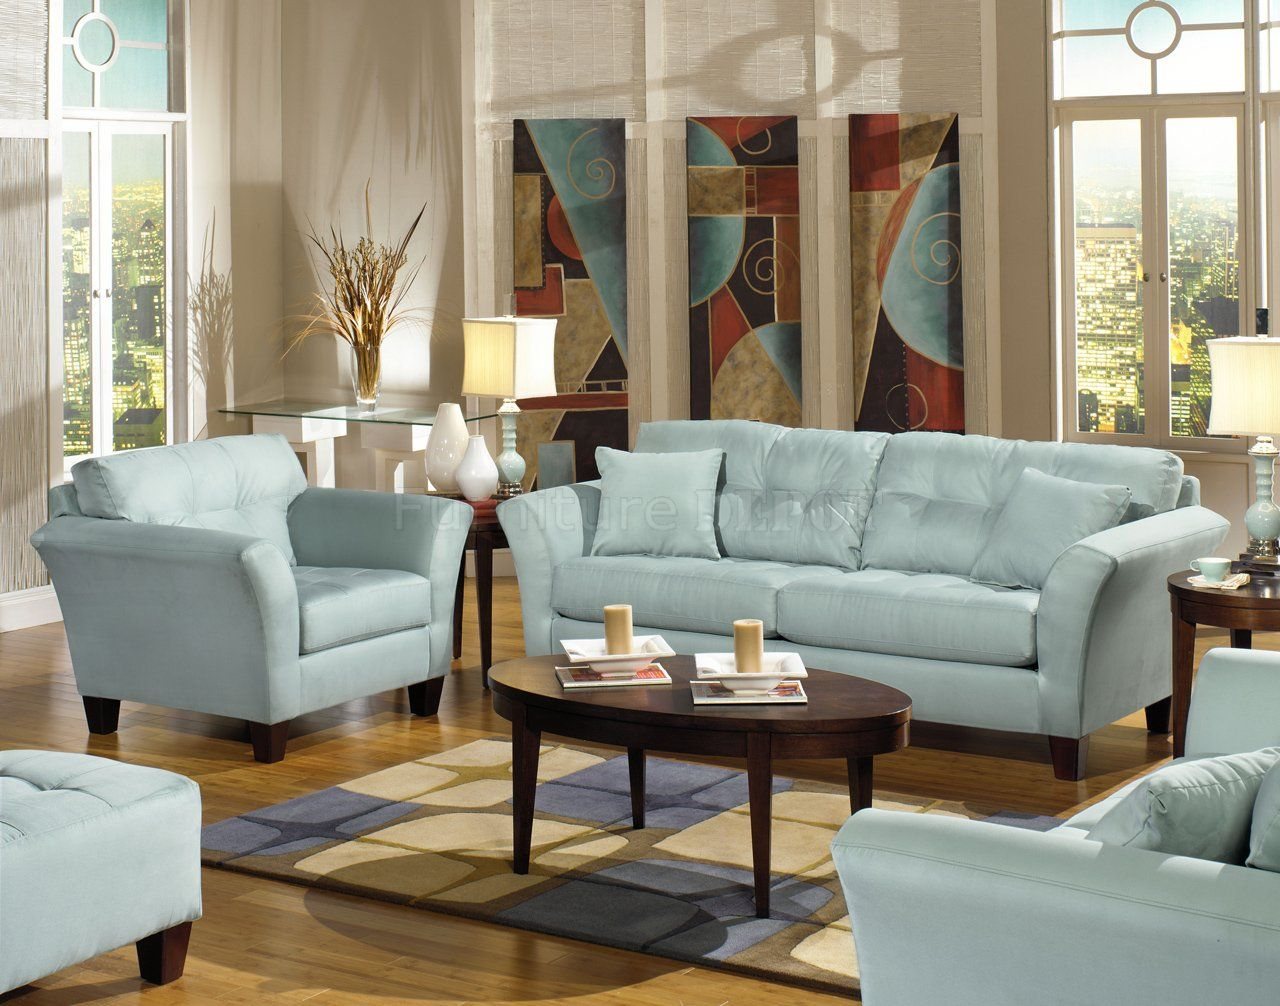 Cool Light Blue Fabric Sofa Luxury Light Blue Fabric Sofa 96 Office Sofa Ideas With Light Blue Blue Sofas Living Room Blue Sofa Living Light Blue Living Room